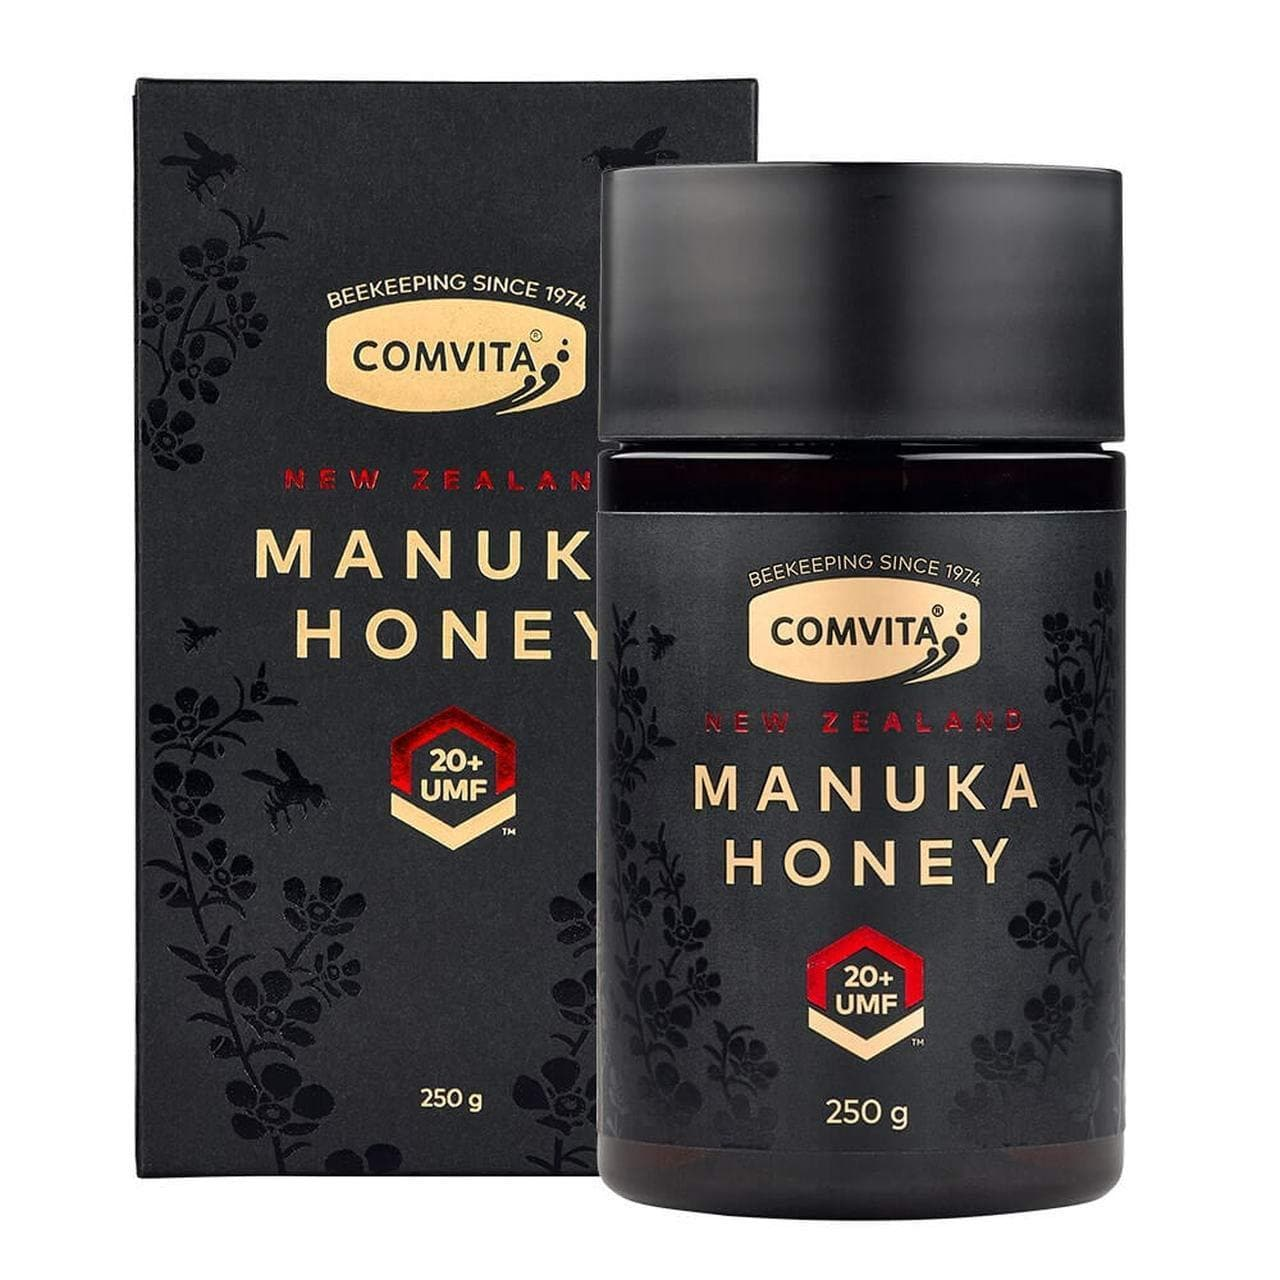 UMF20+ Manuka Honey - Comvita - 250 Gms